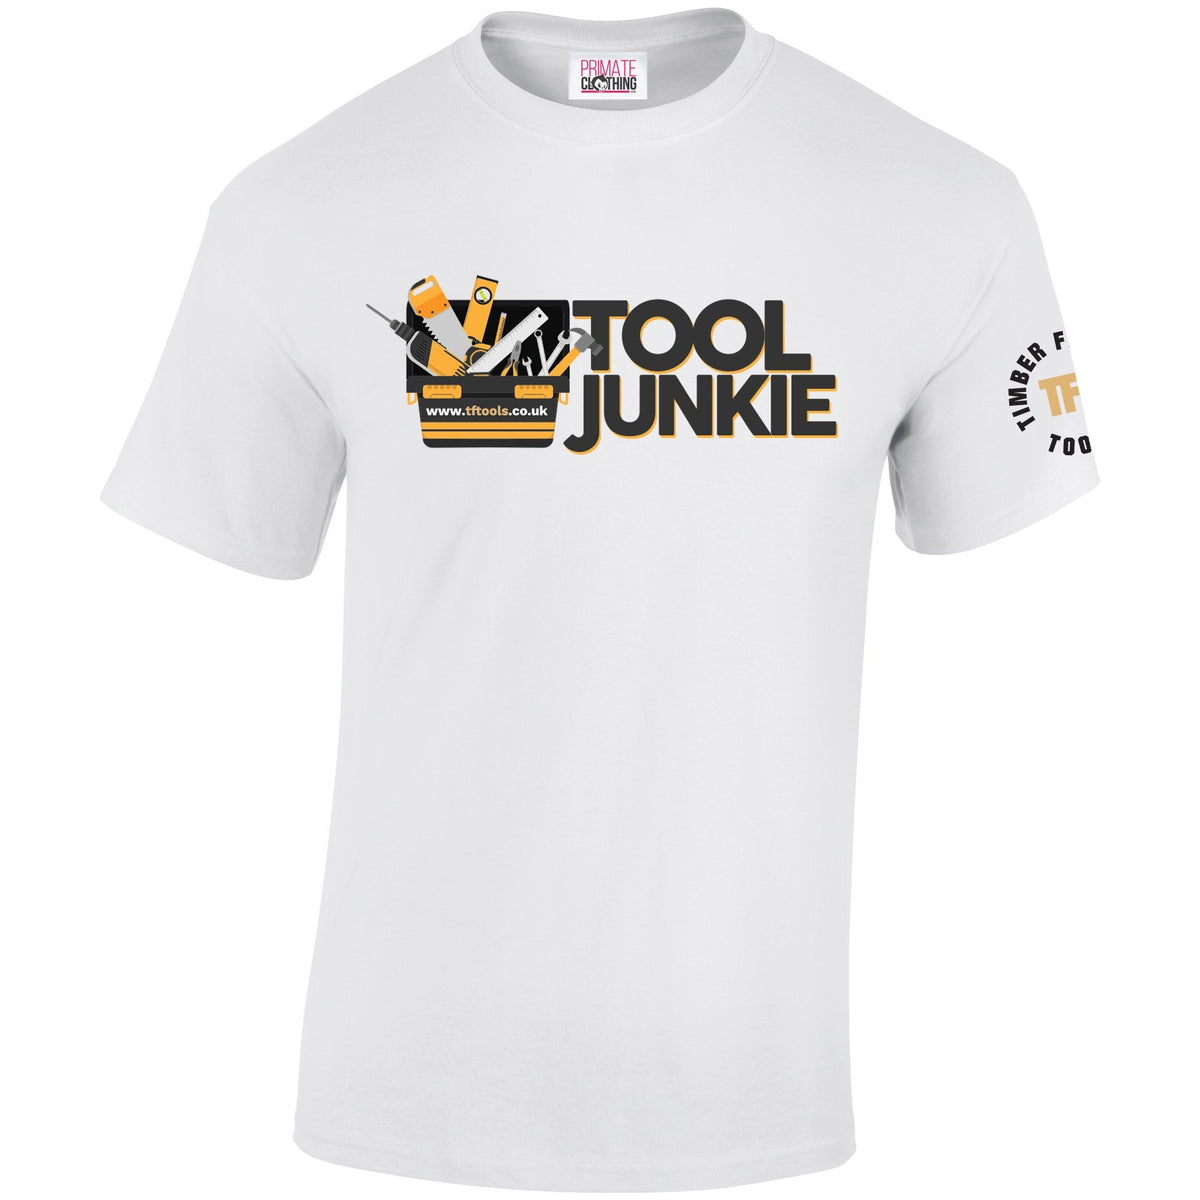 Tool Junkie T-Shirt TF Tools S (GD005) White